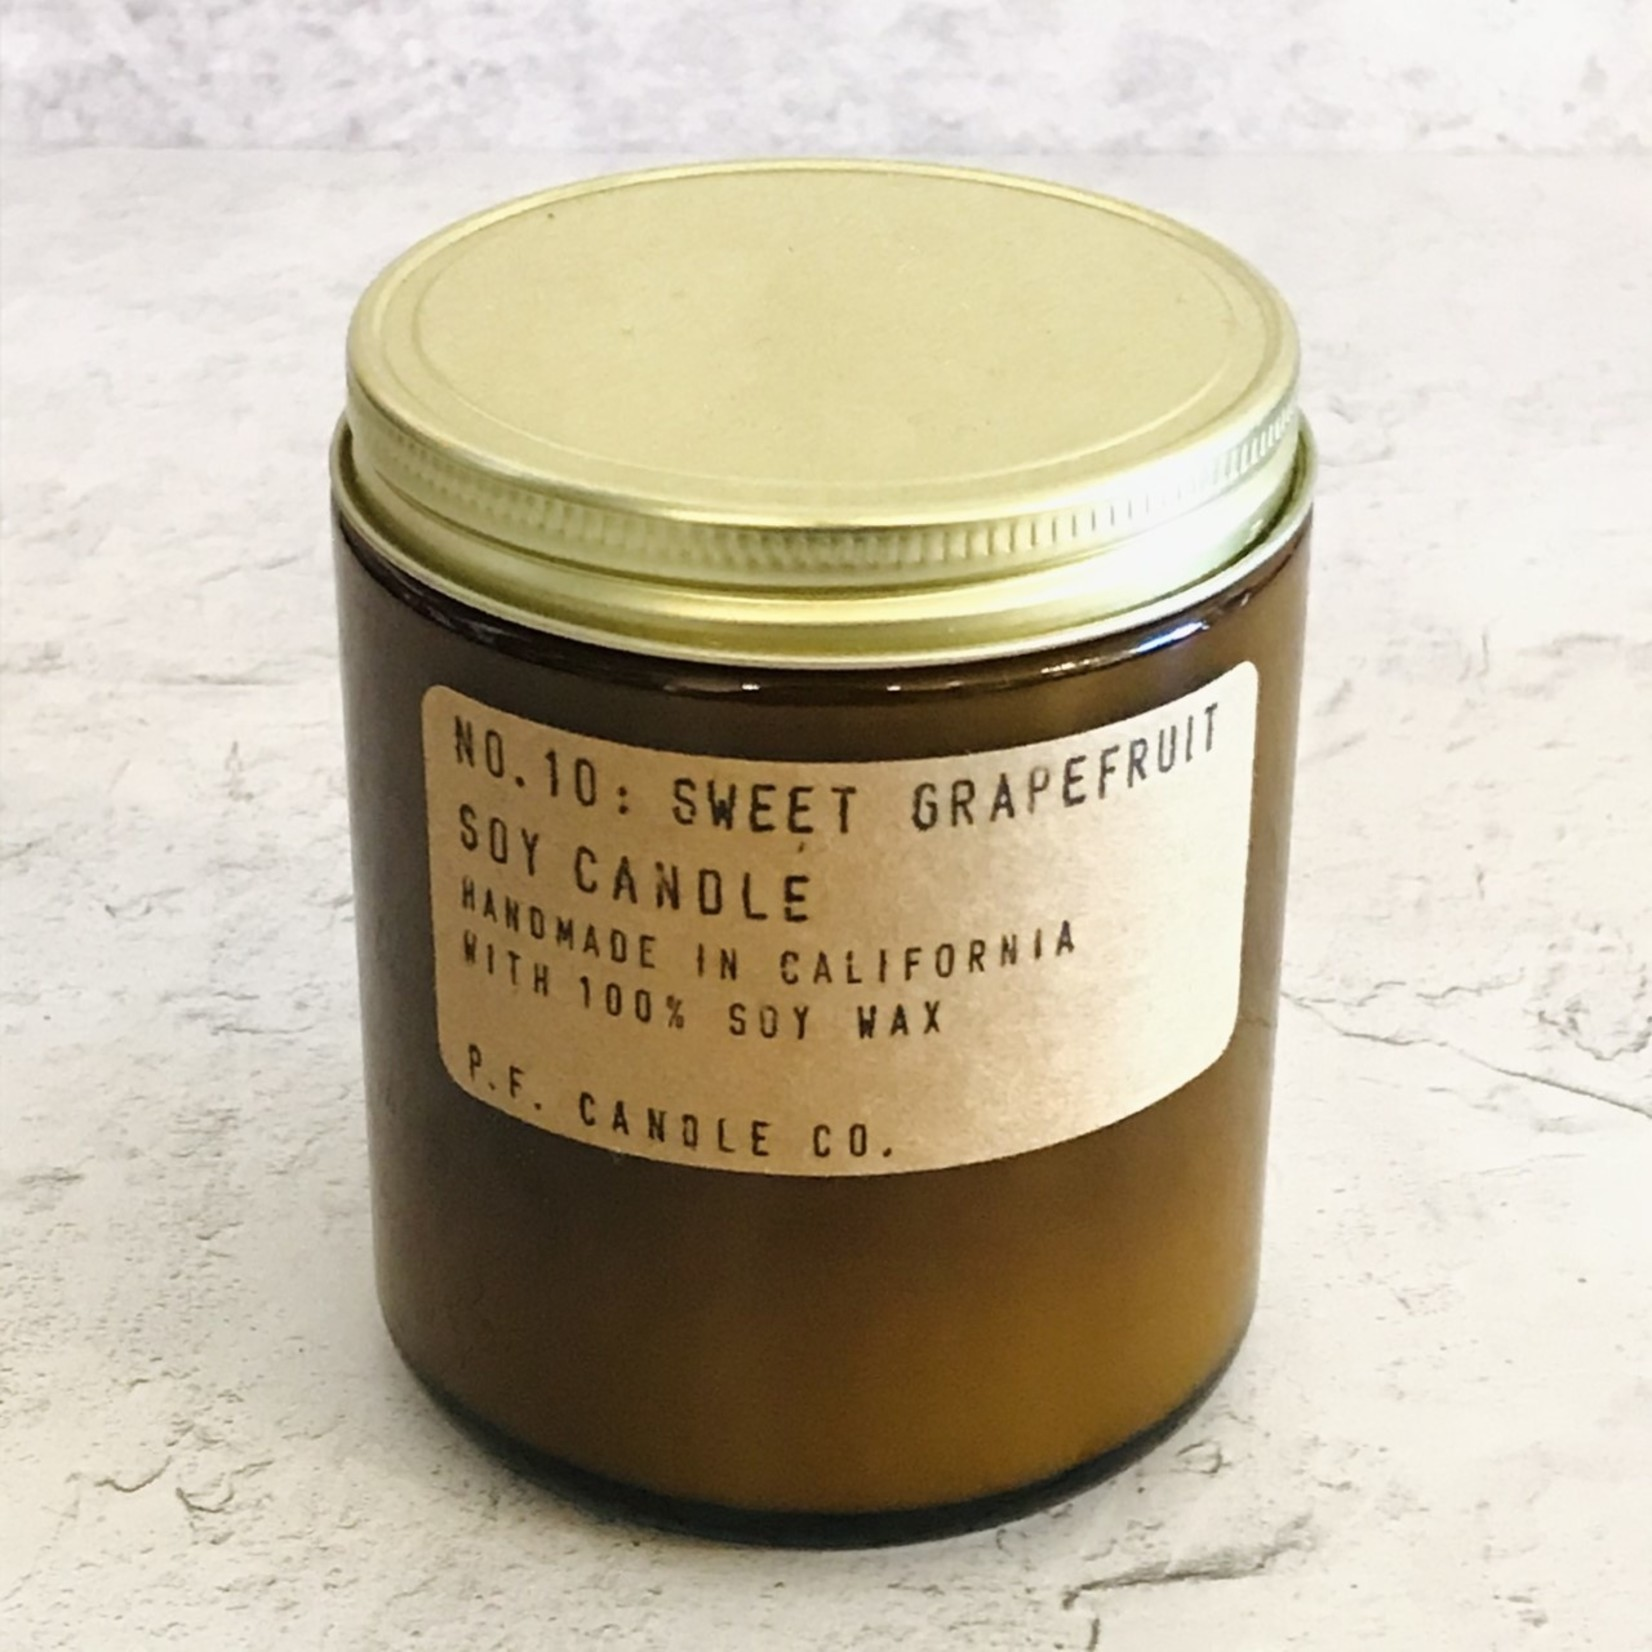 P.F. Candle P.F. Candle Co. Sweet Grapefruit  7.2oz Candle